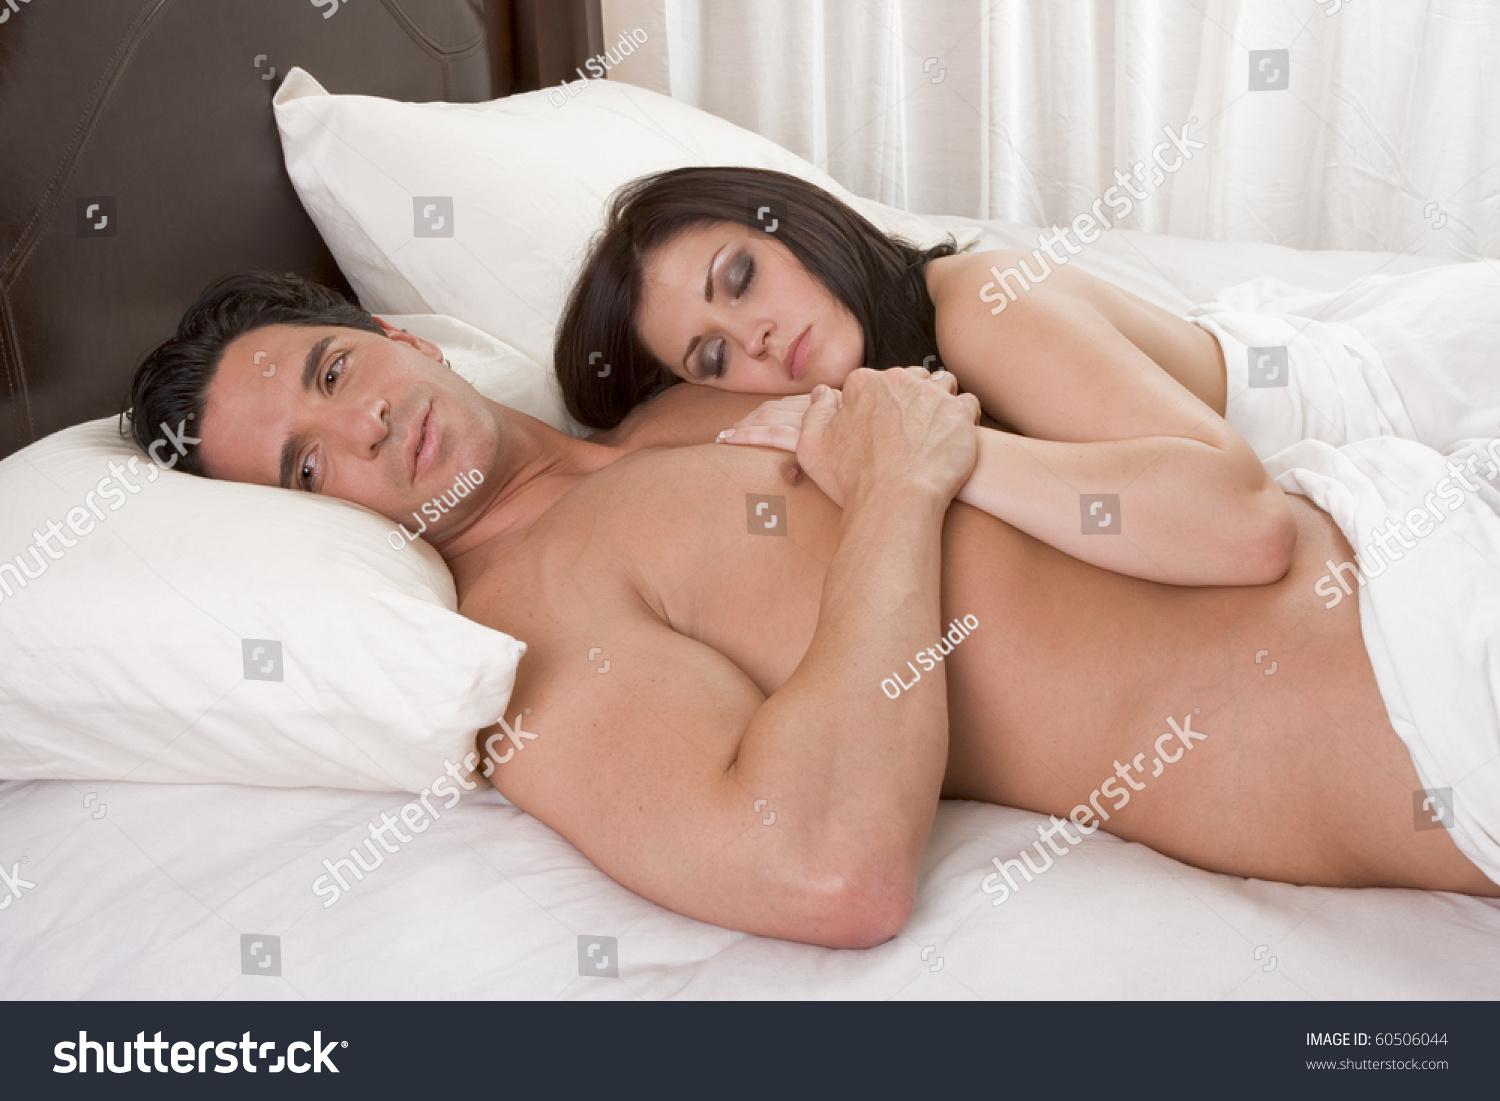 porn of nude heterosexual couple